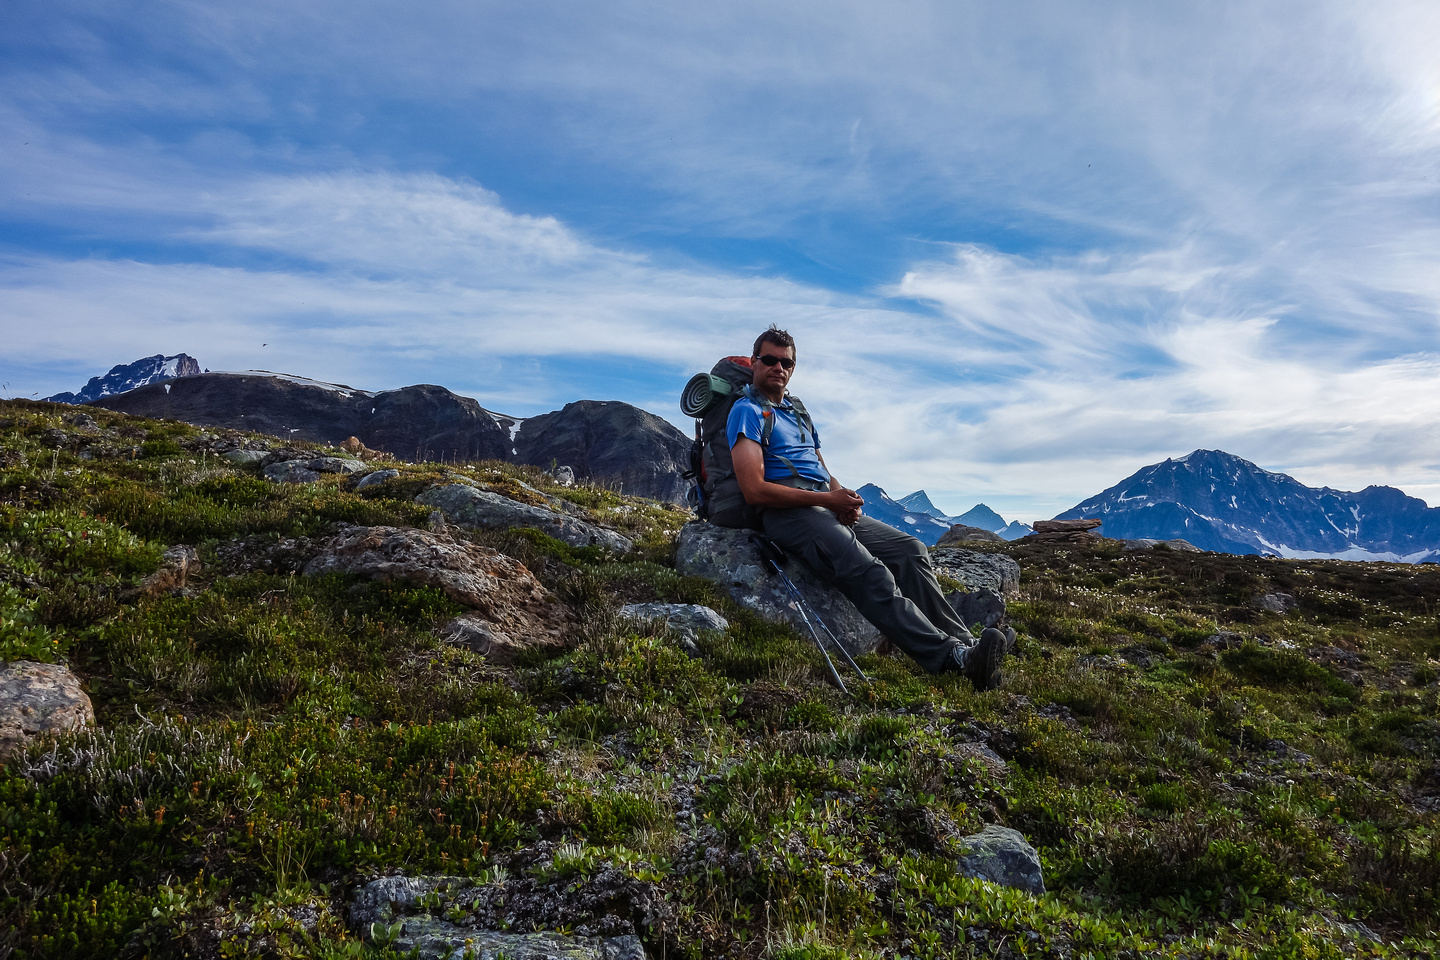 A very satisfied Kevin Barton takes a well-deserved rest break in the alpine meadows above the Geraldine Lakes.